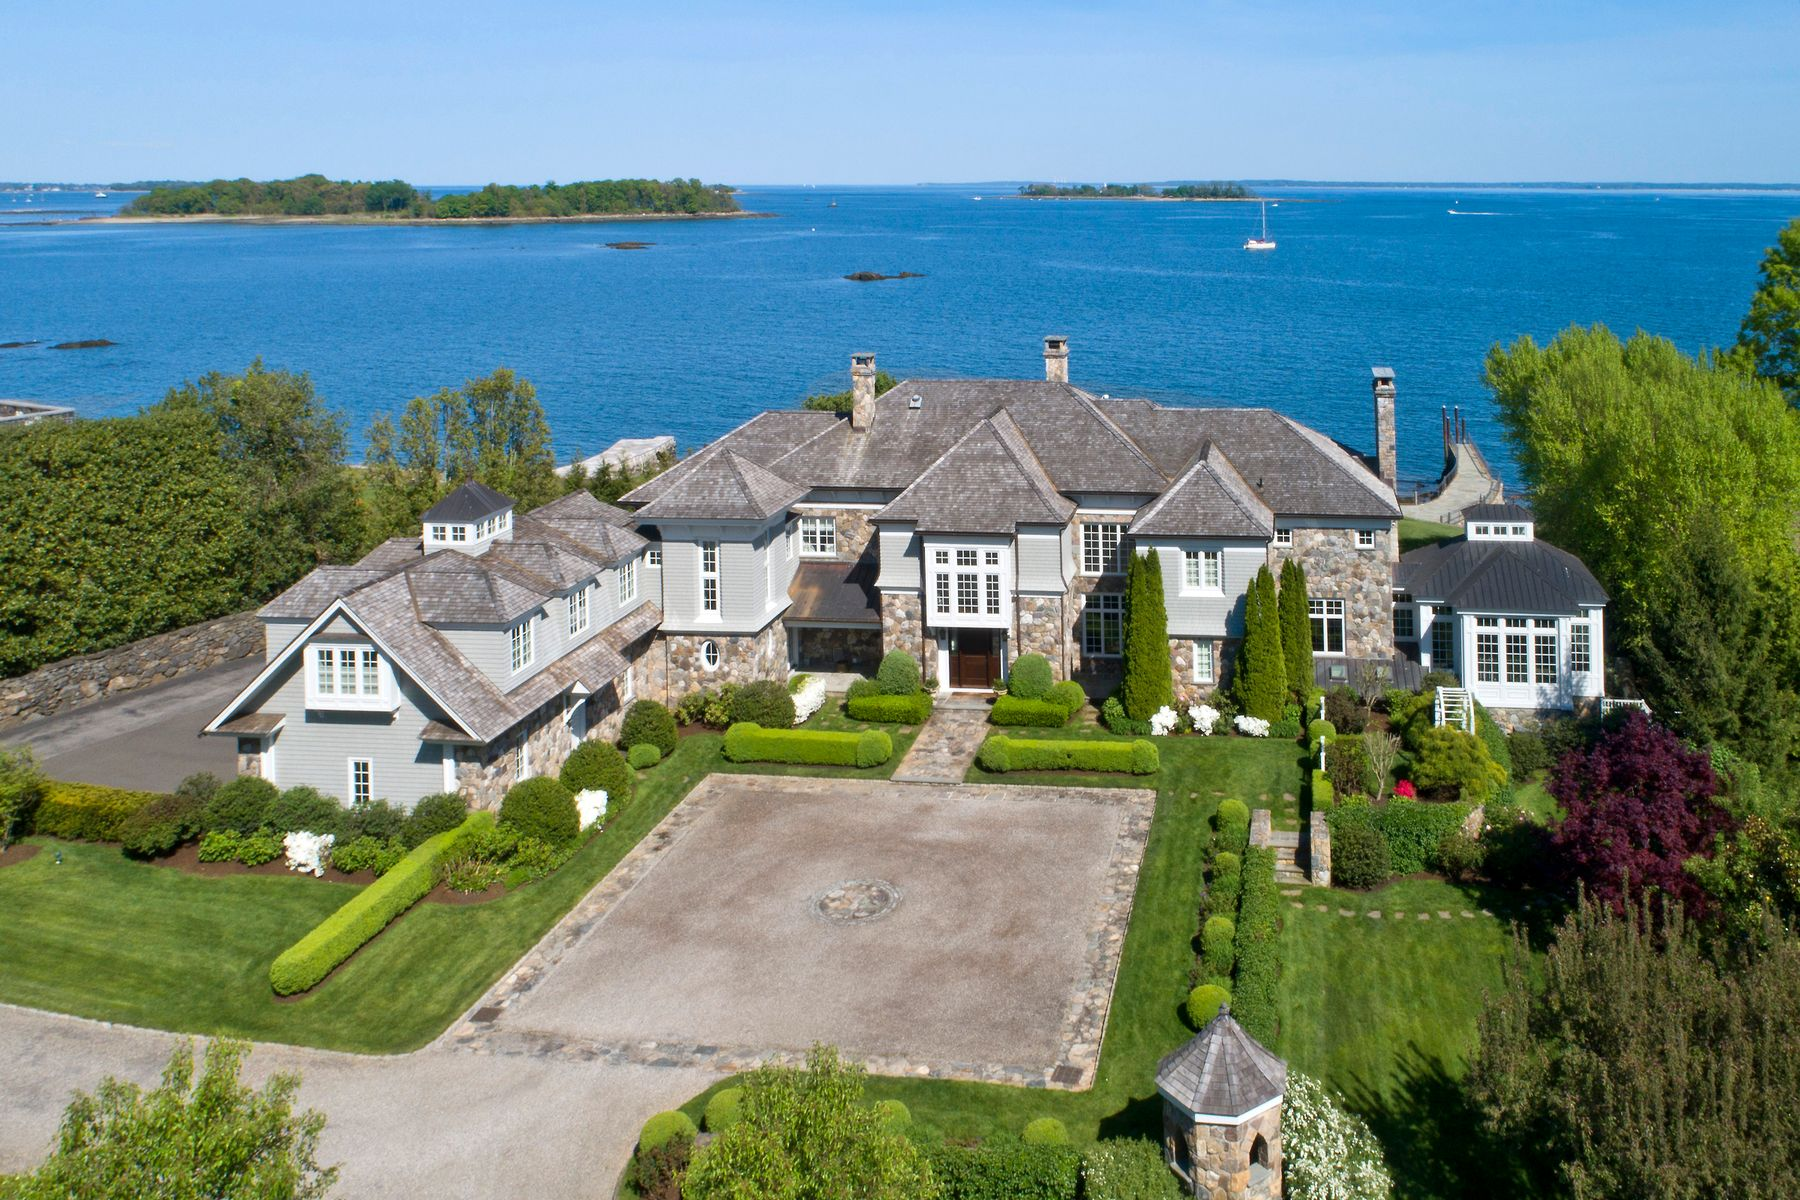 Single Family Homes for Sale at Serenity by the Sea 215 Byram Shore Road Greenwich, Connecticut 06830 United States